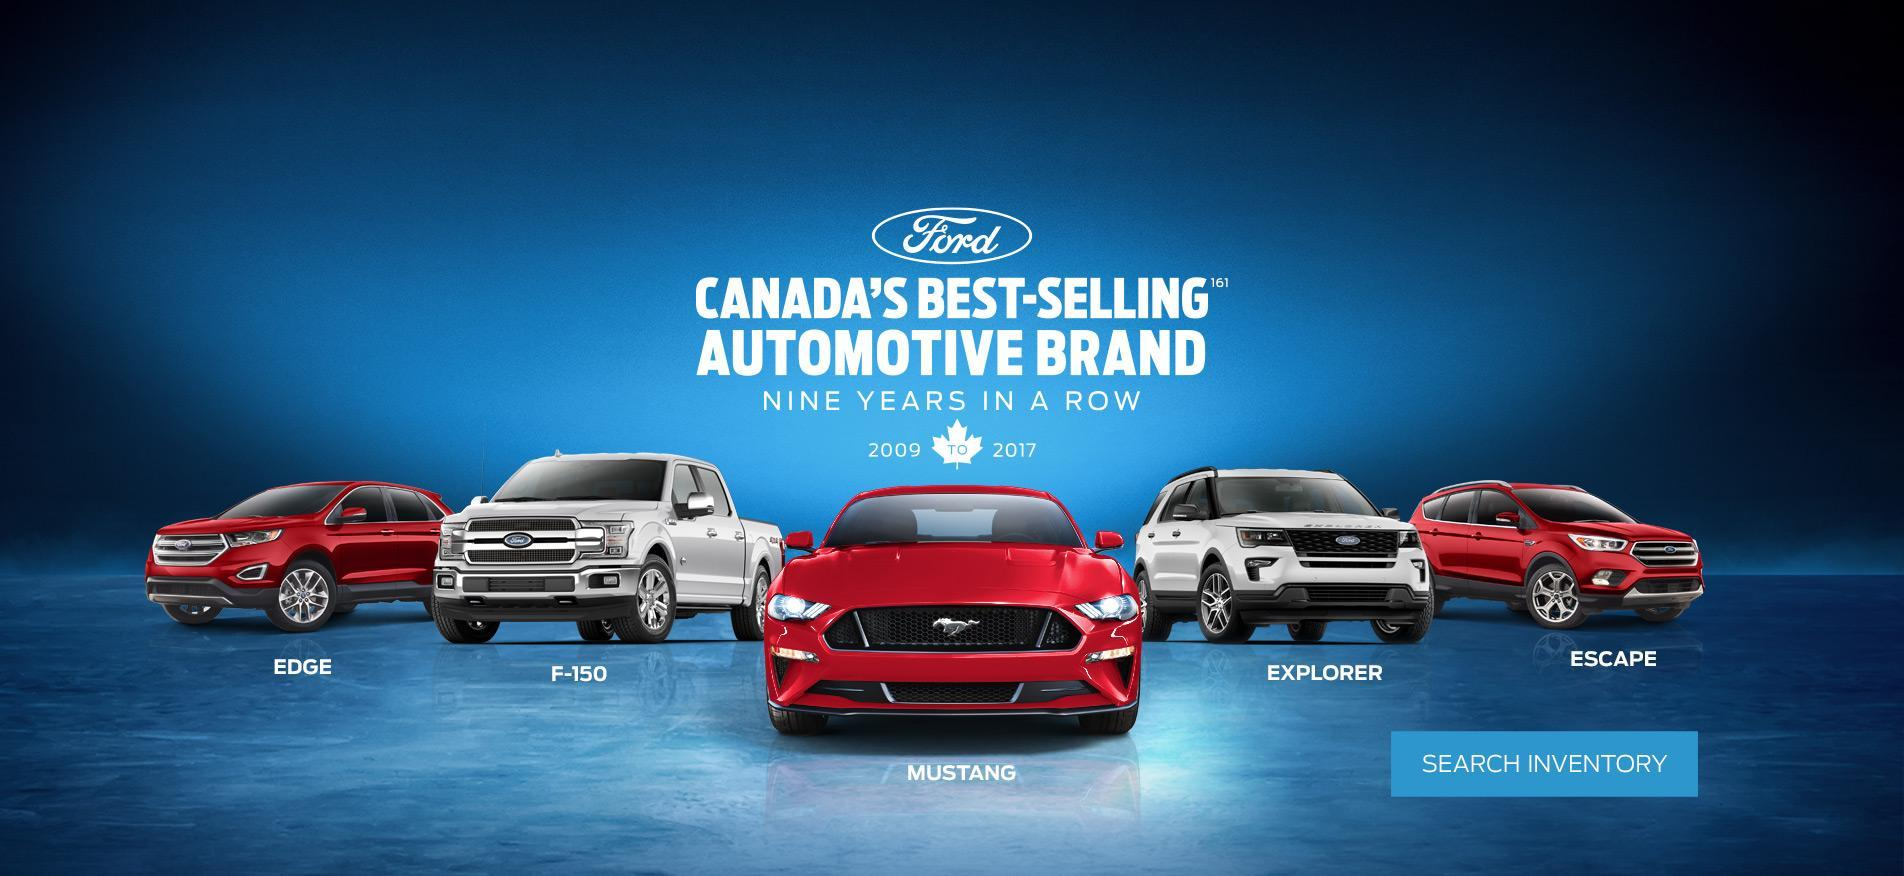 Ford July 2018 - Desktop